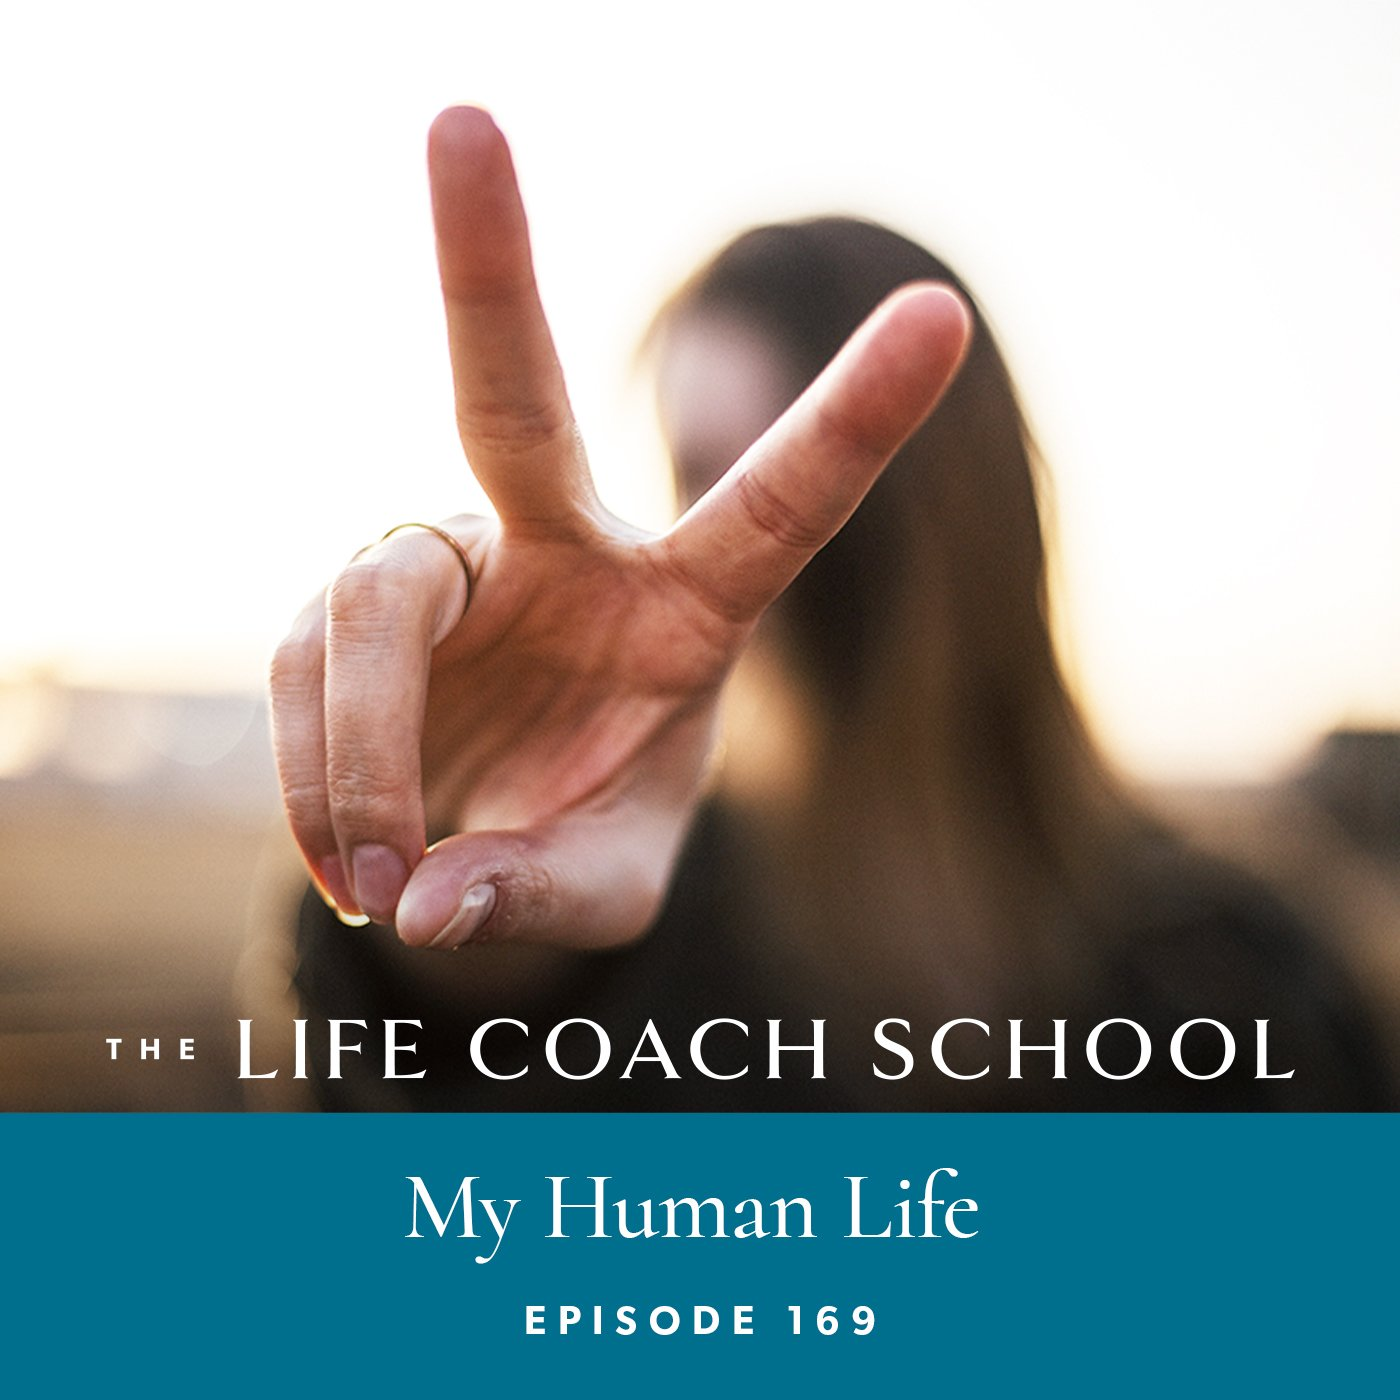 The Life Coach School Podcast with Brooke Castillo | Episode 169 | My Human Life